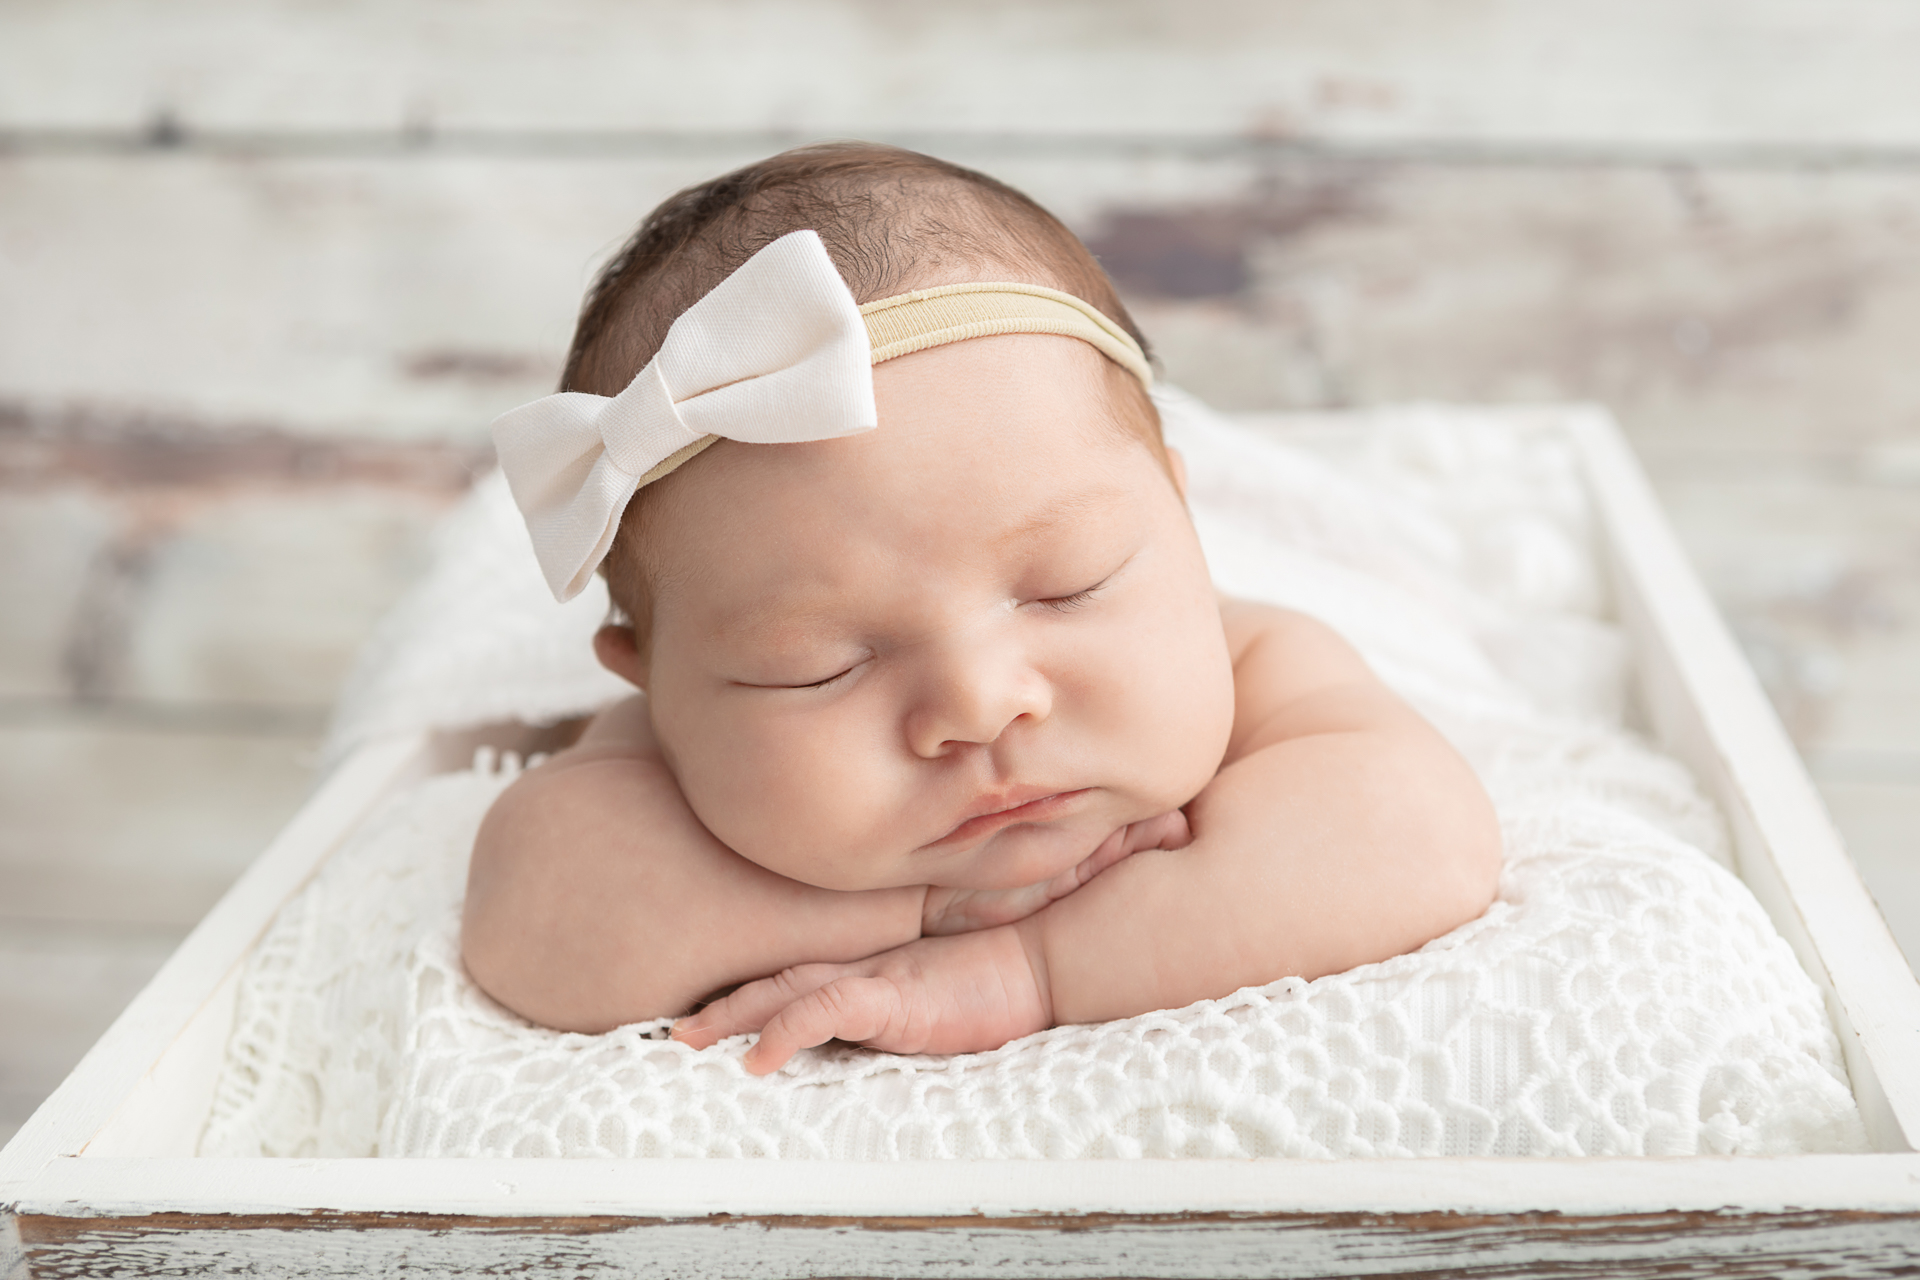 Greenwich Photography Studio – Kaia – Newborn Photos